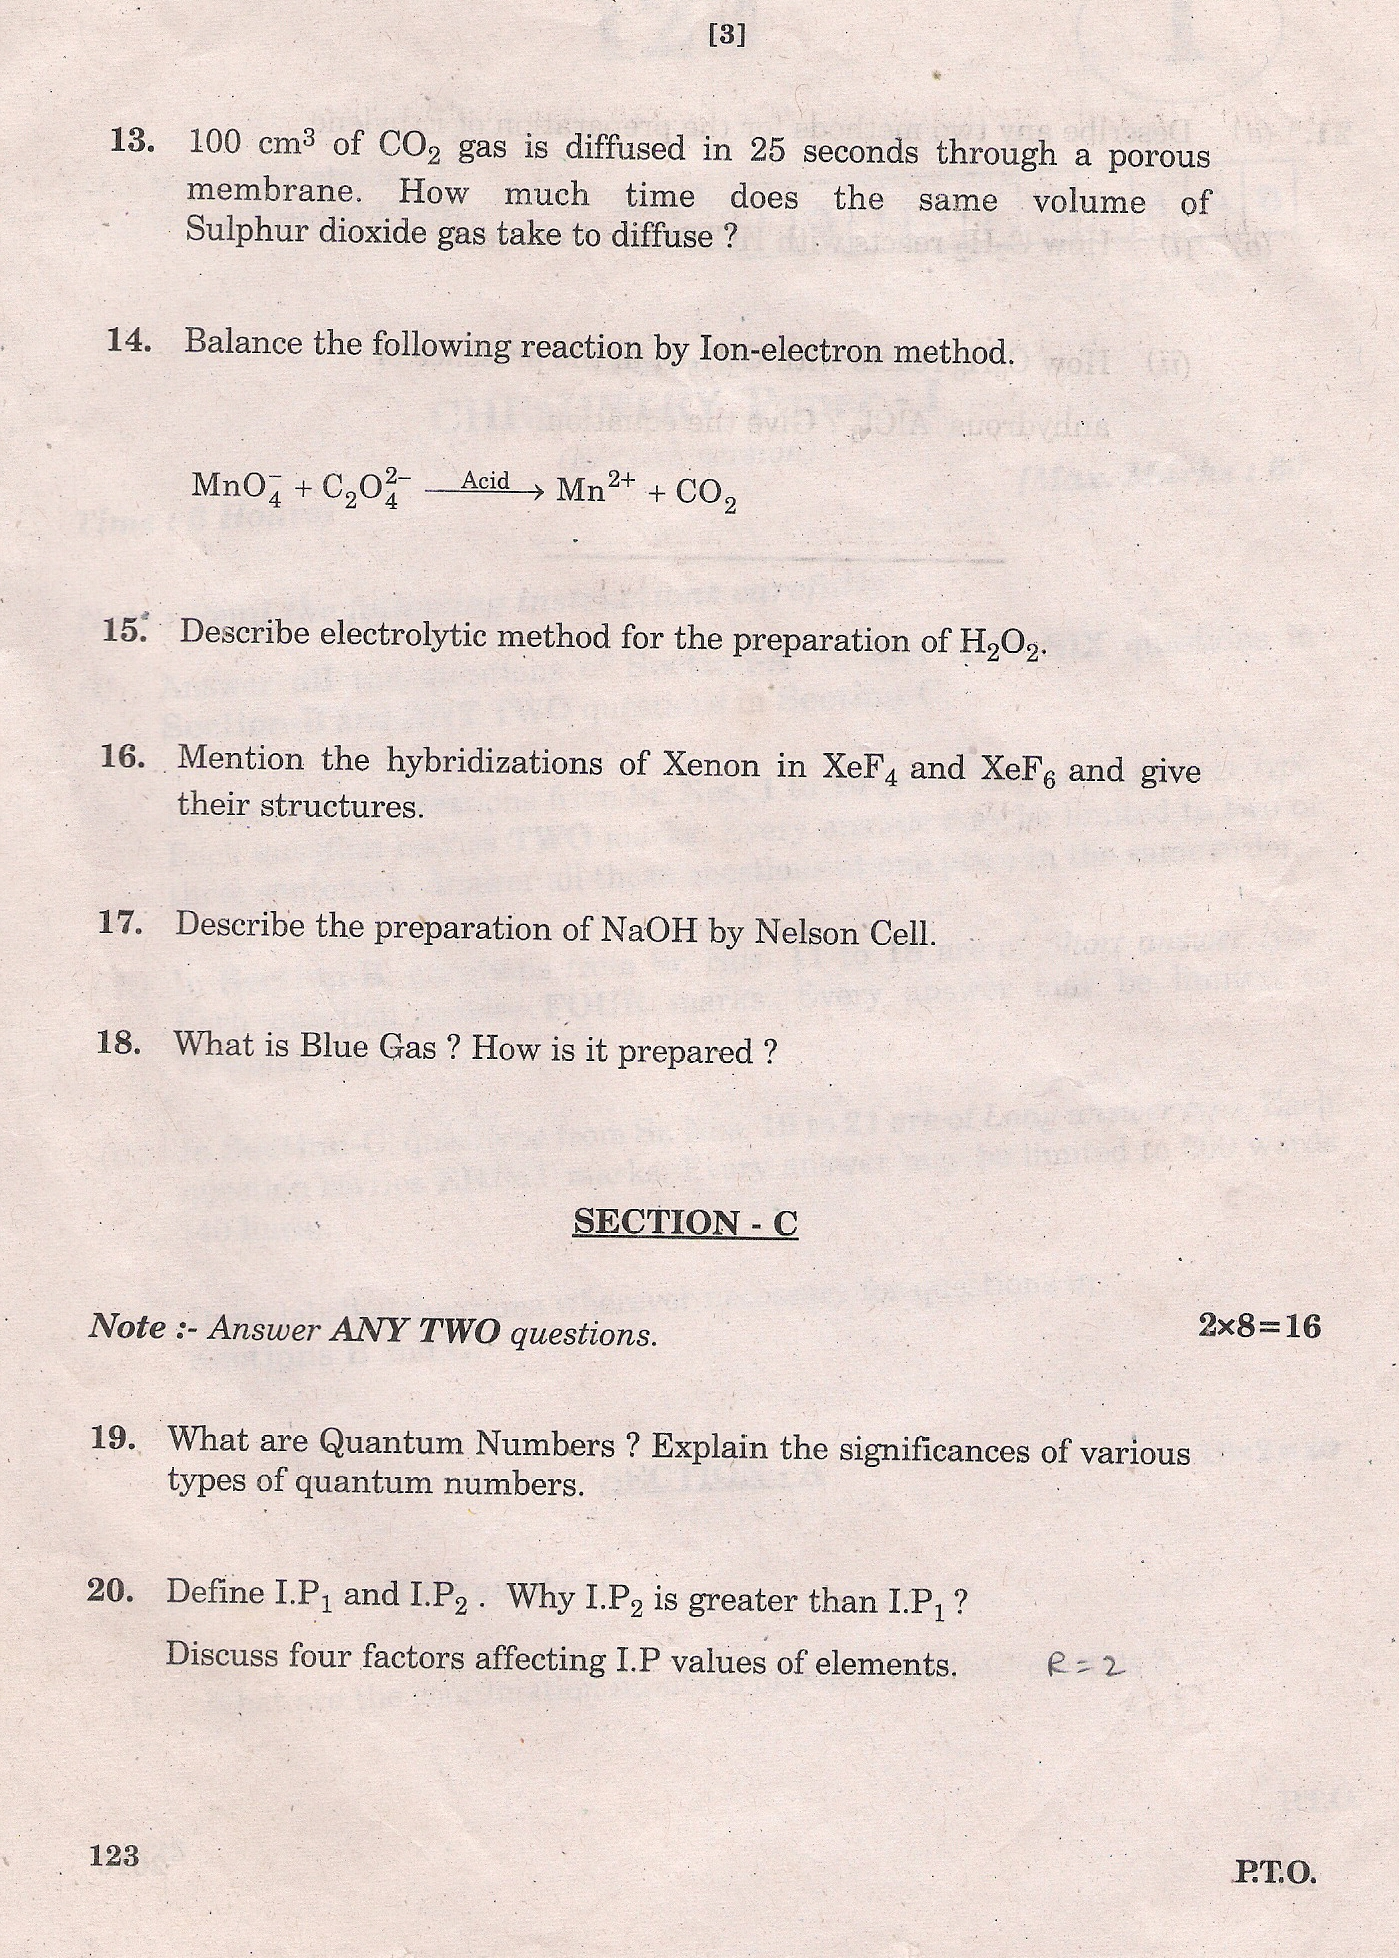 andhra pradesh intermediate chemistry question paper 2011 Appsc cdpo (general studies) question paper with key held on   appsc degree college lecturers (notification no: 26/2016) chemistry question  paper with key  appsc asst engineer in ap rural water supply(concerned  subject) held  assistant executive engineer's exam - general studies (2011)  with key.